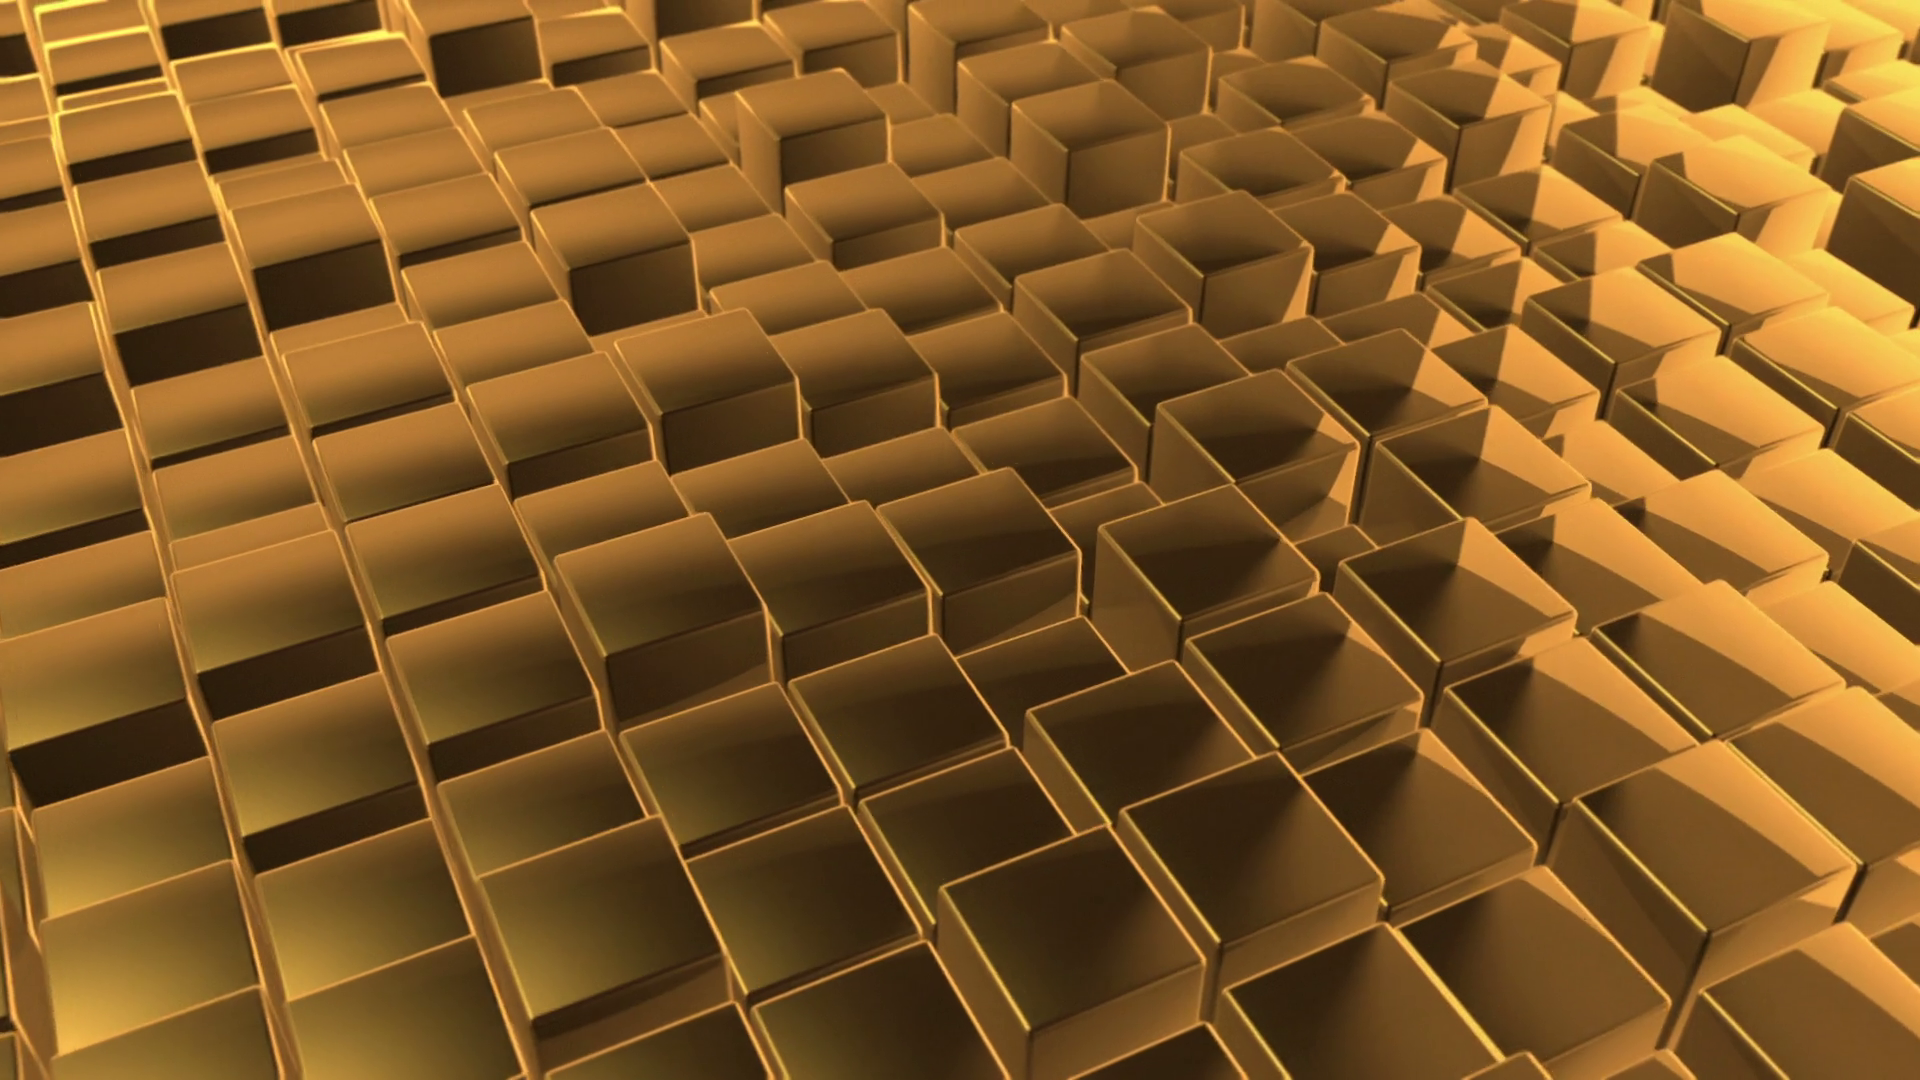 Scrolling Floor Made Up Of Metallic Cubes Shiny Metal Cubes With Displacement Seamless Looping Video Background 1920x1080 Full Hd Gold Motion Background Storyblocks